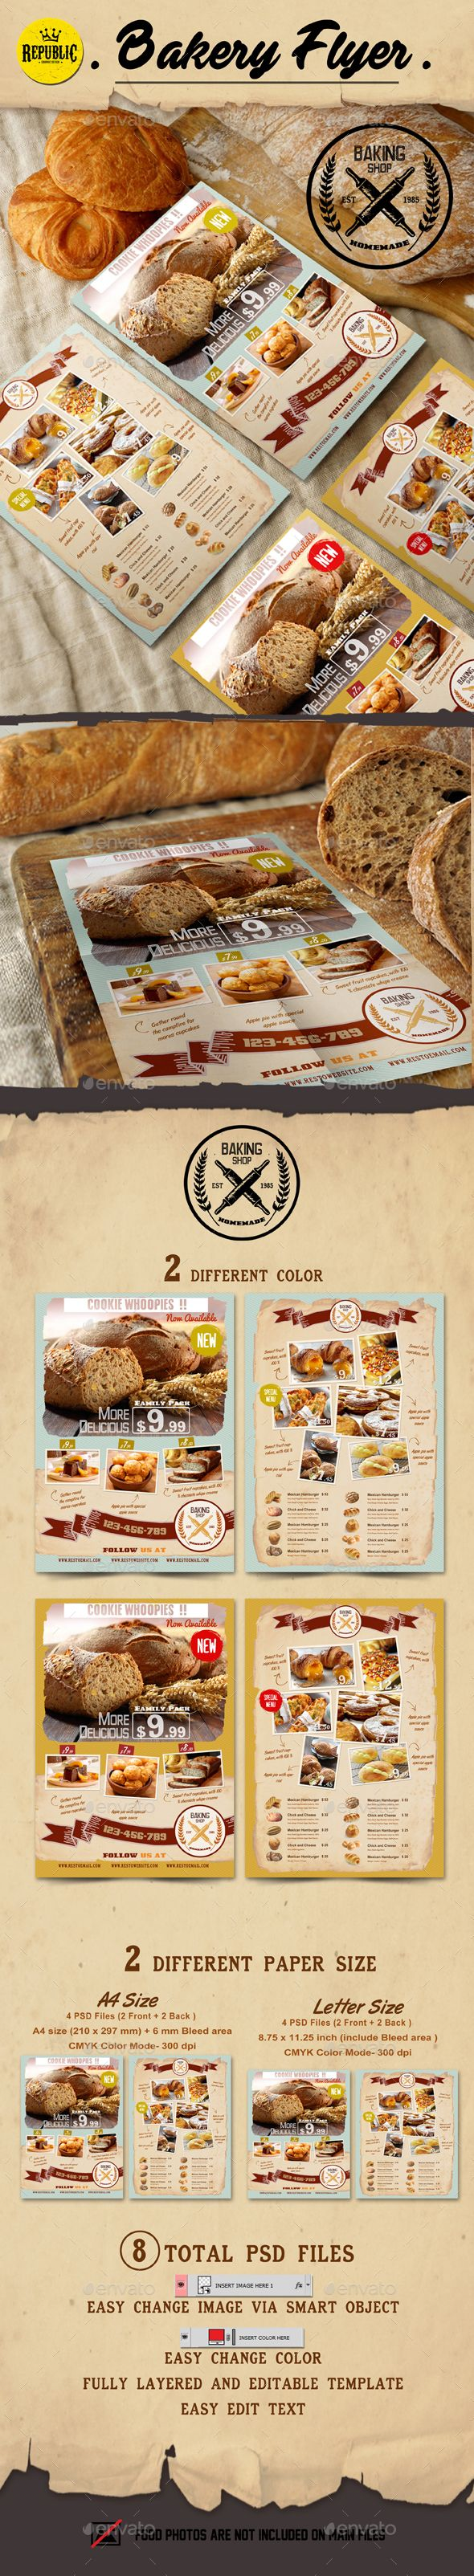 Kitchen Layout Templates 6 Different Designs: BAKERY FLYER File Features 2 DIFFERENT COLOR